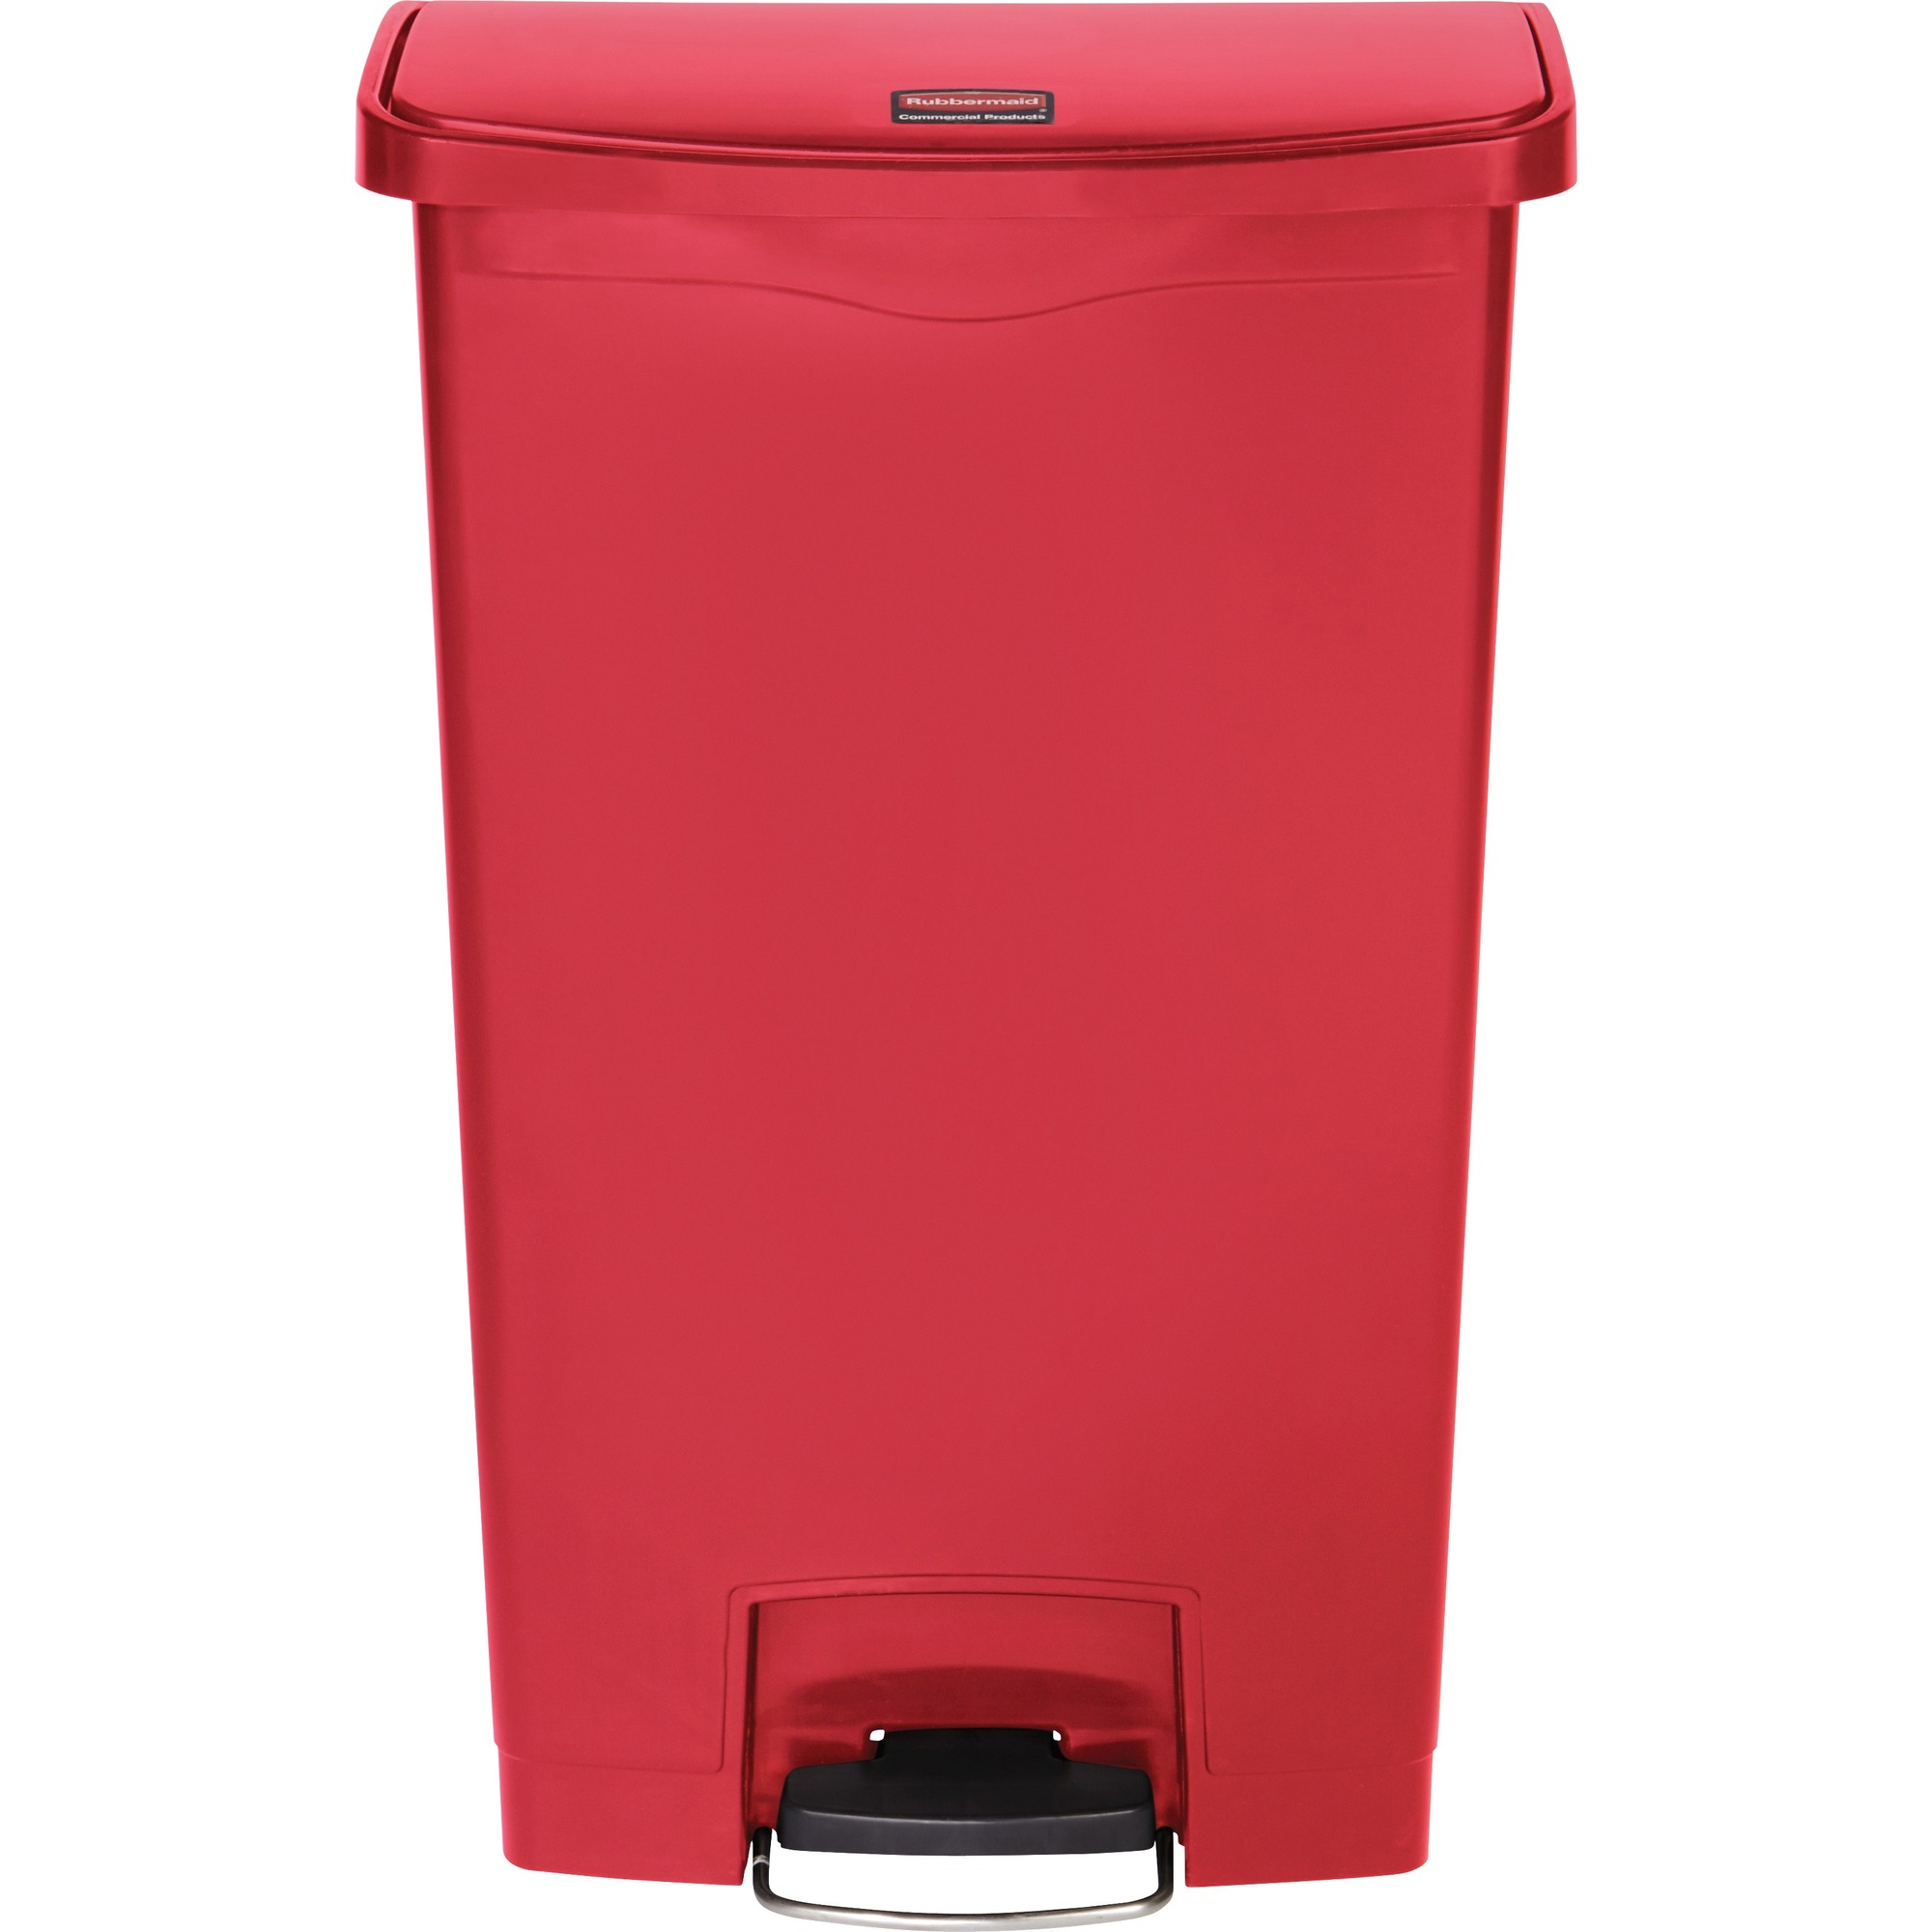 Wondrous Rubbermaid Commercial Products Rubbermaid Commercial Slim Jim 18 Gal Step On Container Step On Opening Hinged Lid 18 Gallon Capacity Manual Pdpeps Interior Chair Design Pdpepsorg